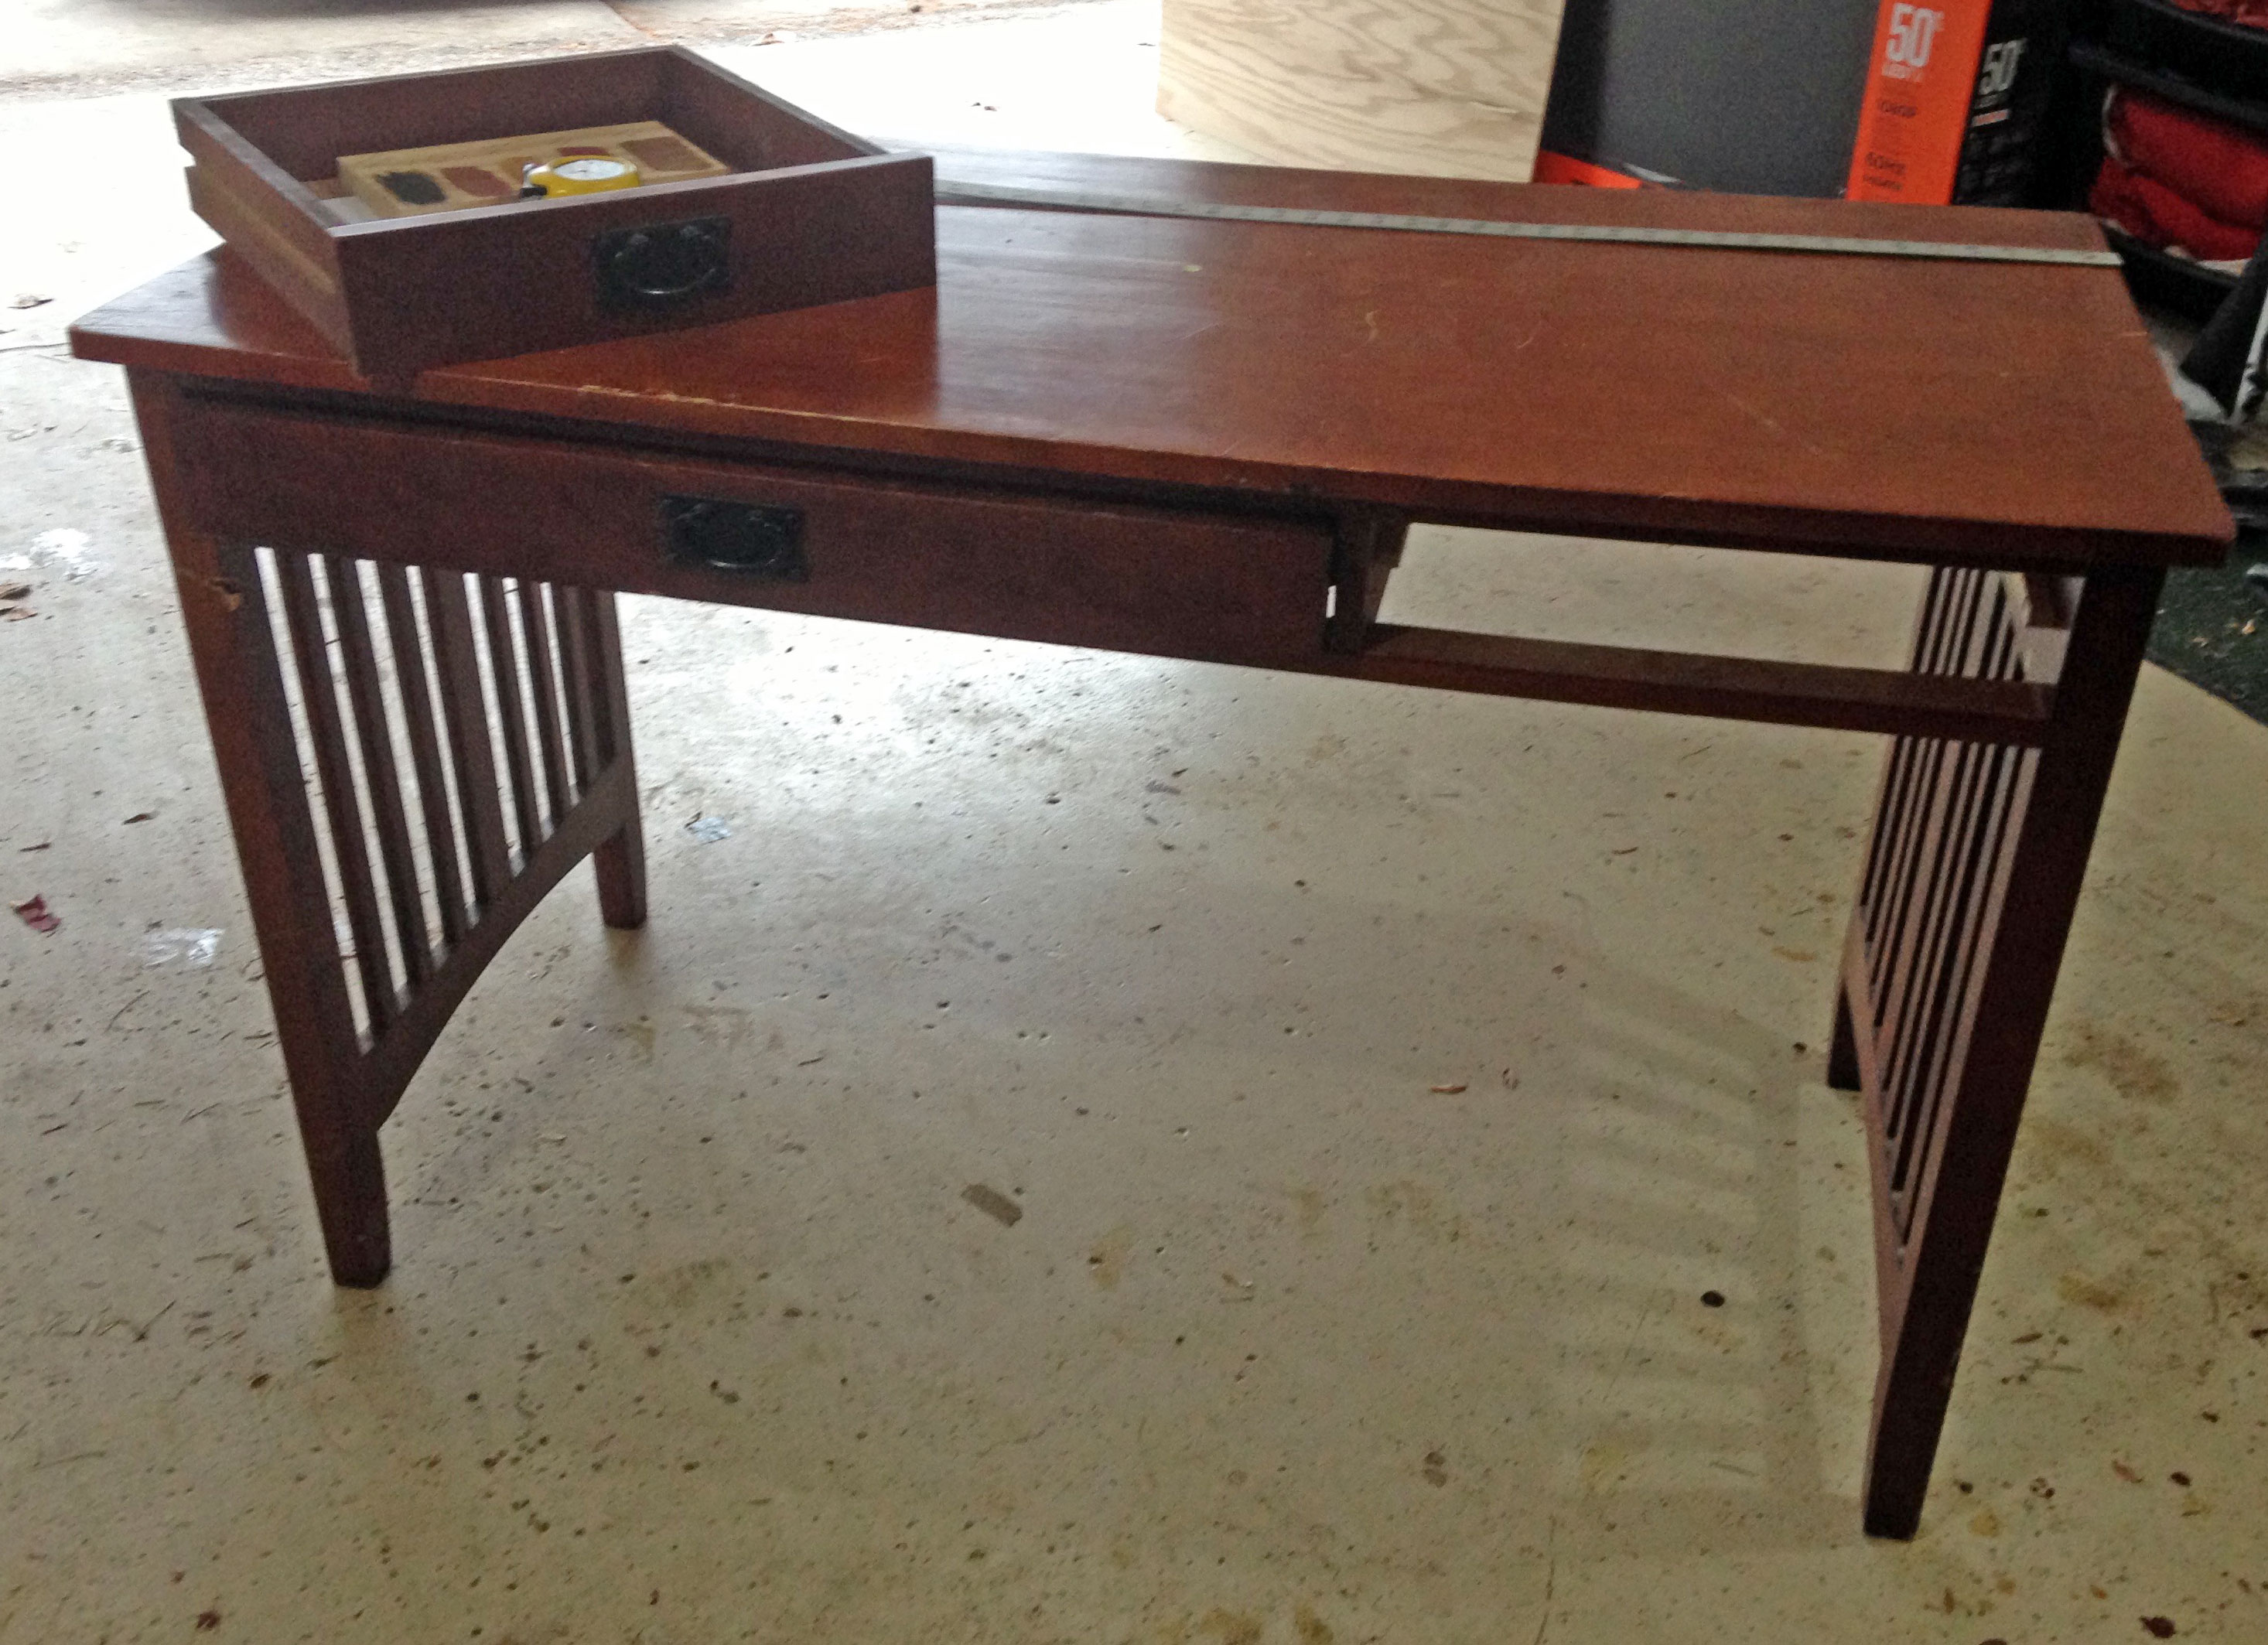 Diy Computer Desk From An Old Broken Foyer Table Upcycling Jenuinemom Com